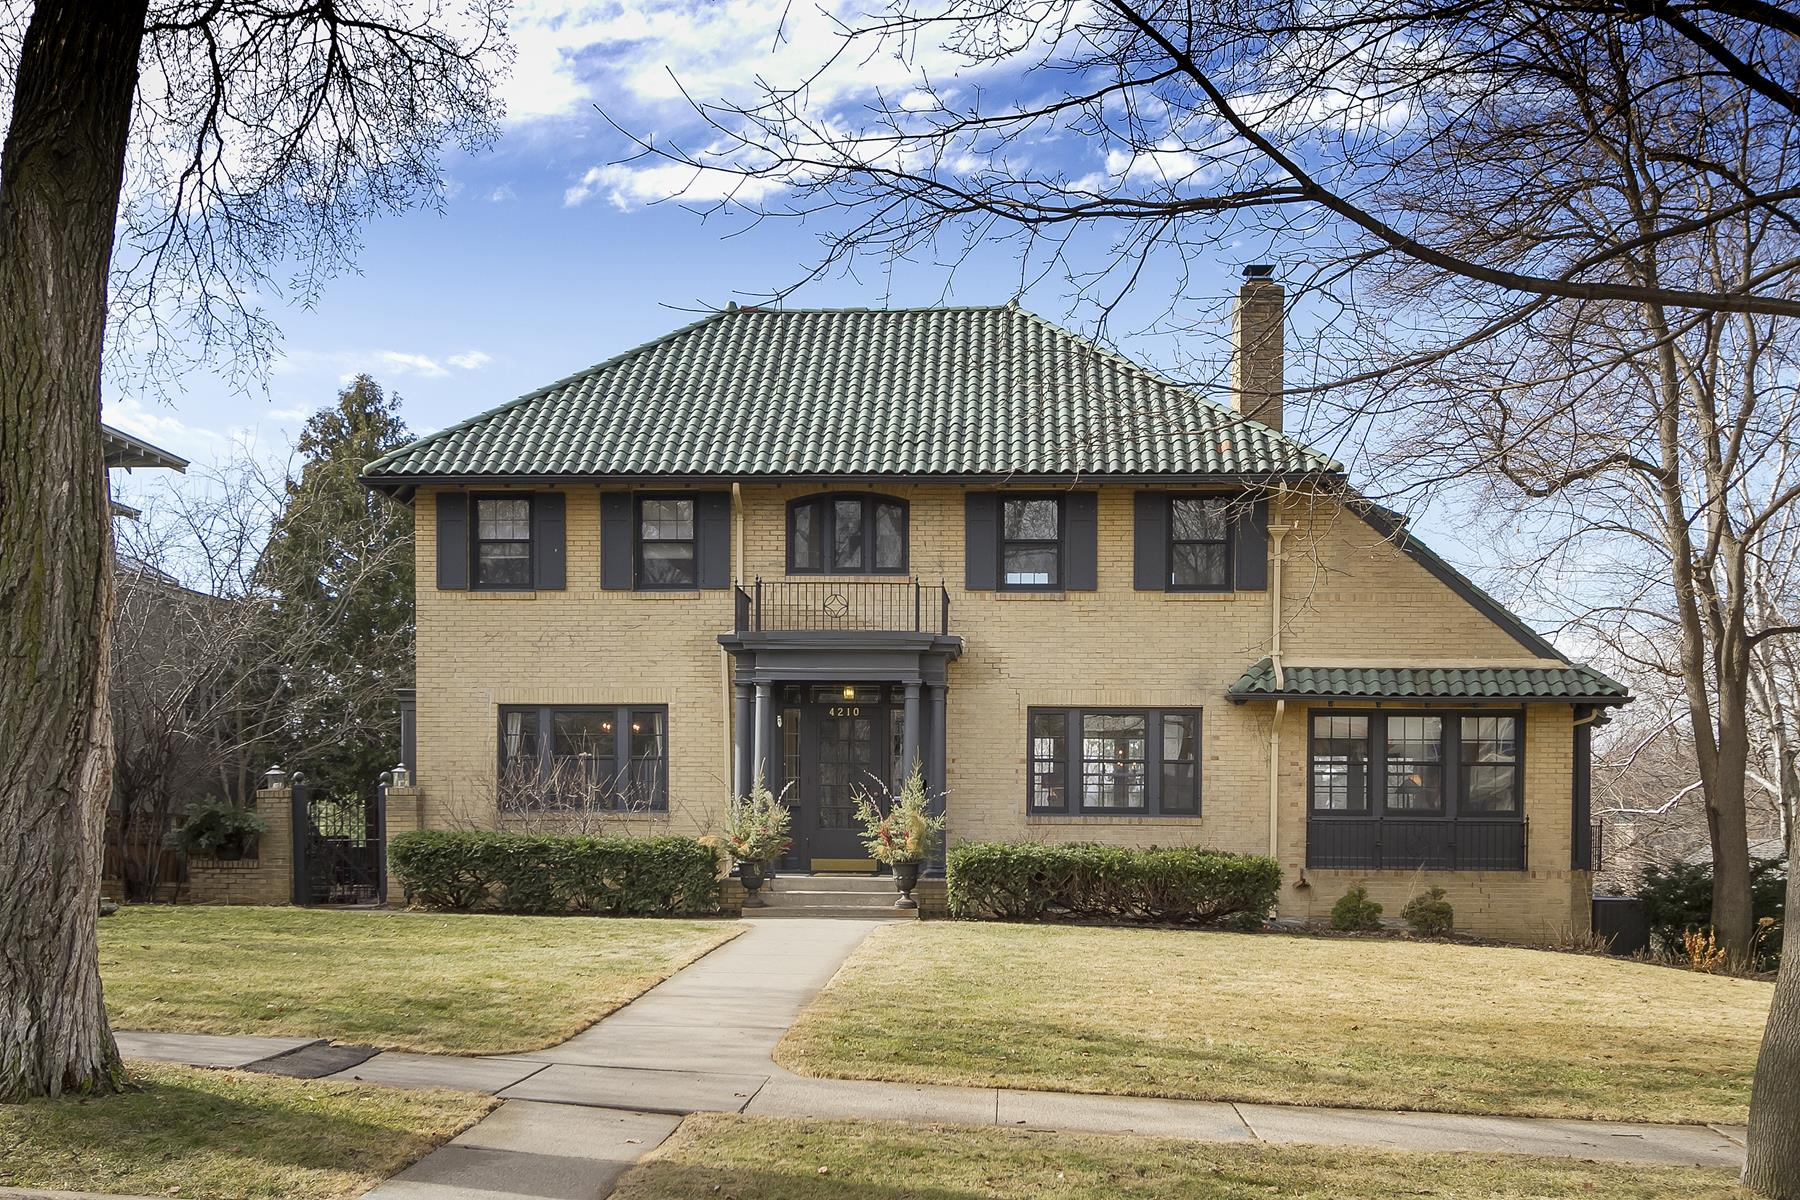 Single Family Home for Sale at 4210 Fremont Avenue S Minneapolis, Minnesota, 55409 United States